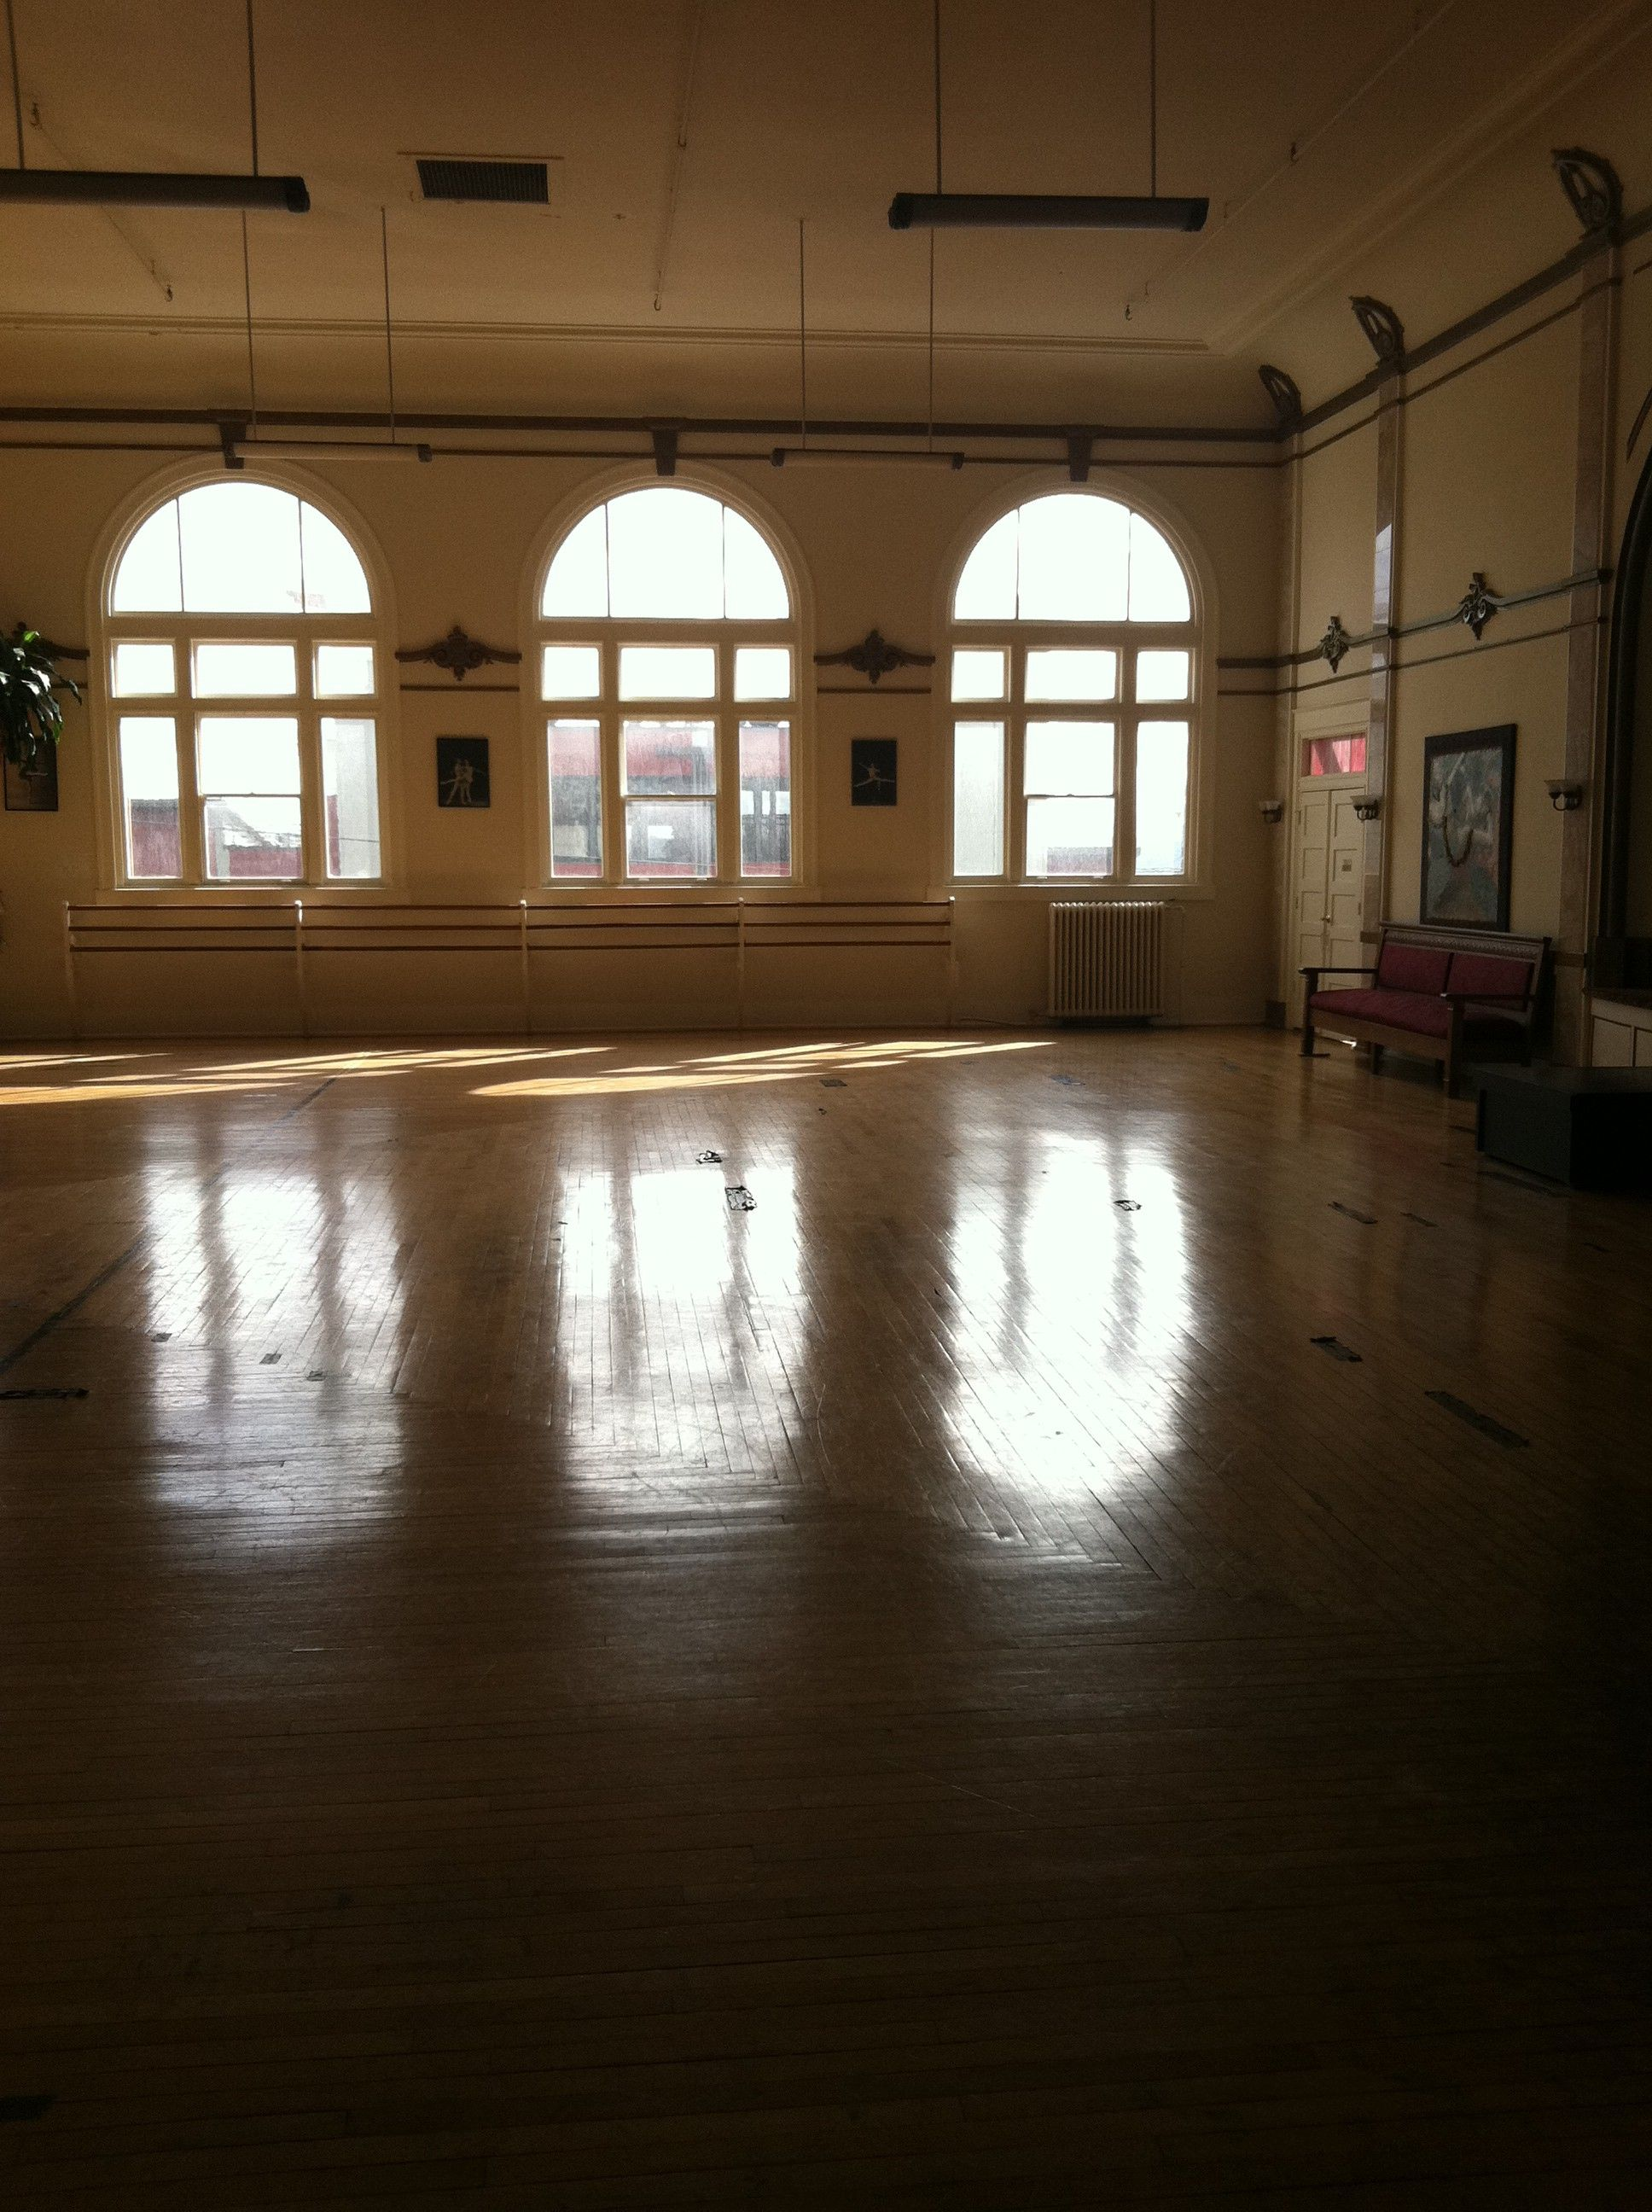 This Is The Ballet Studio I Used To Dance In No Big Deal